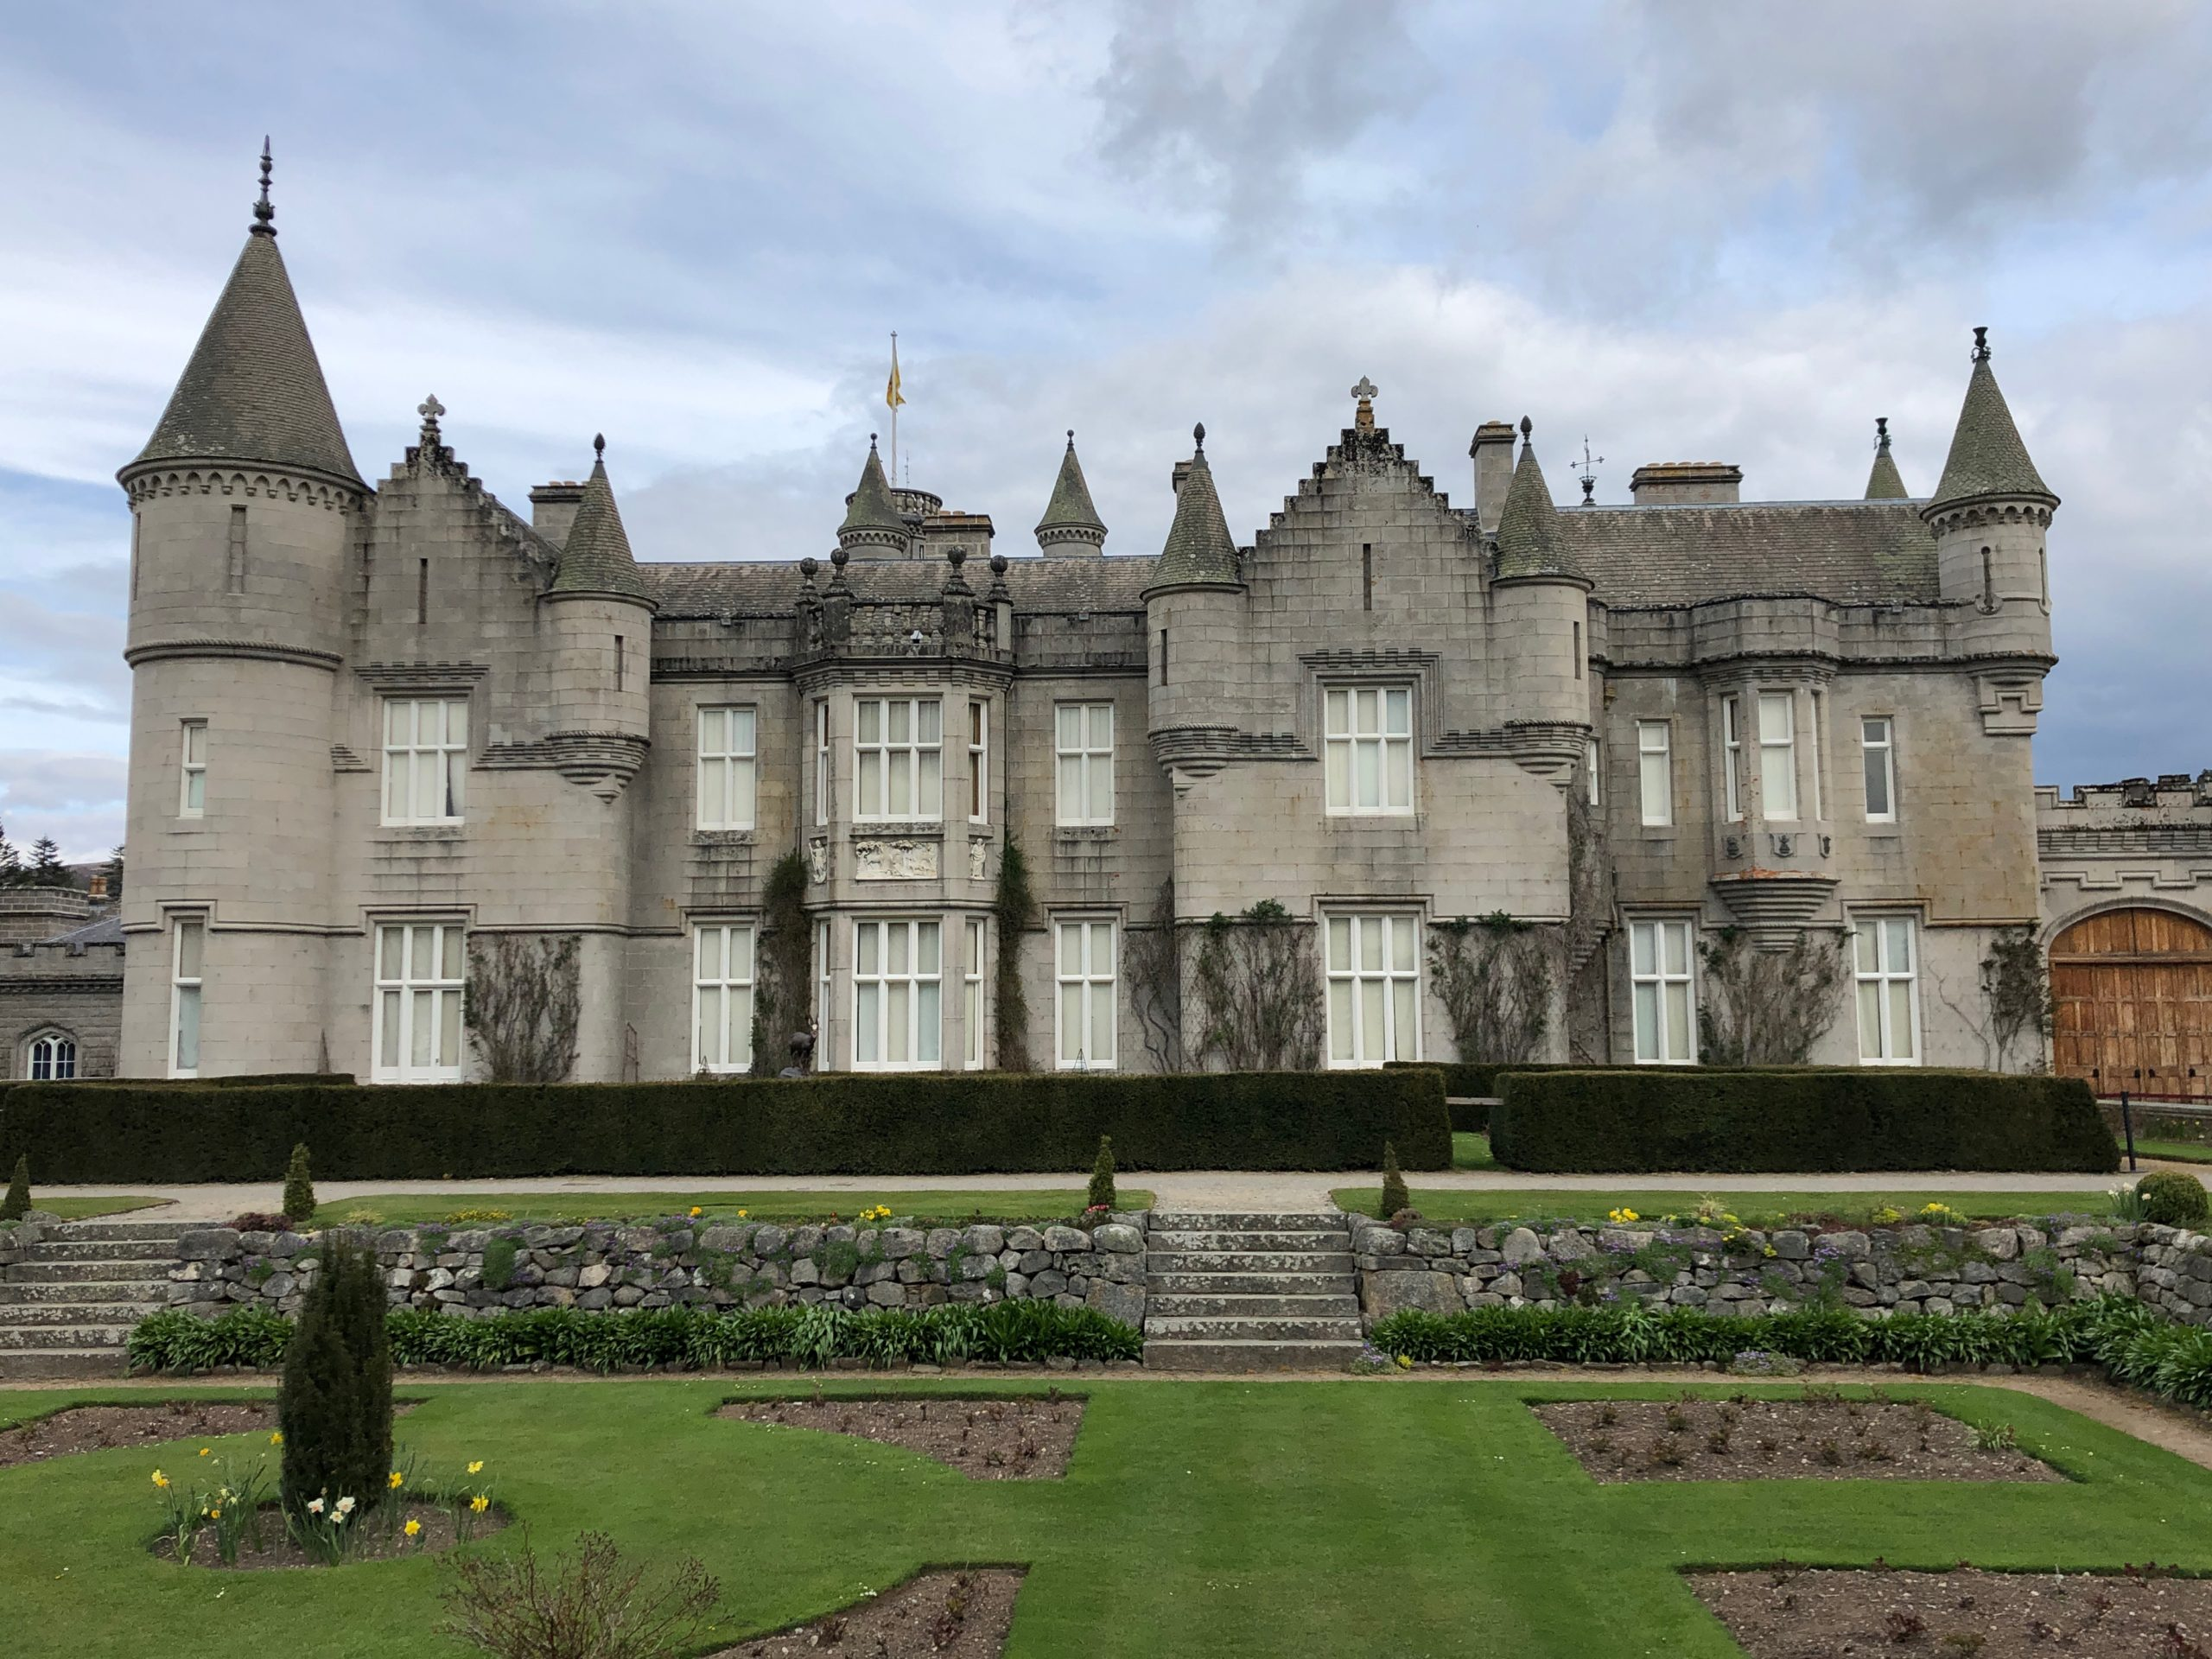 Balmoral Castle in Aberdeenshire, Scotland